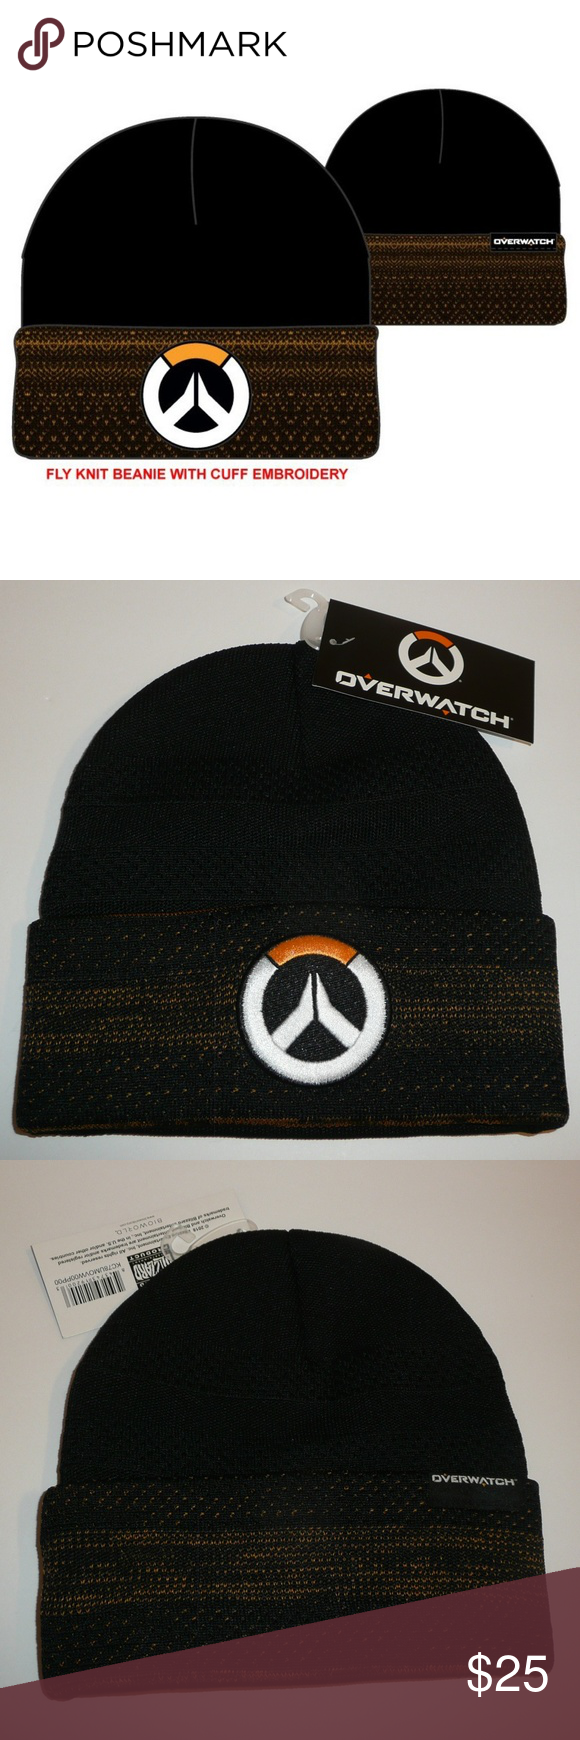 16853a3a2558f Officially Licensed Overwatch Beanie Hat his is for 1 Overwatch Beanie Hat.  This fly knit